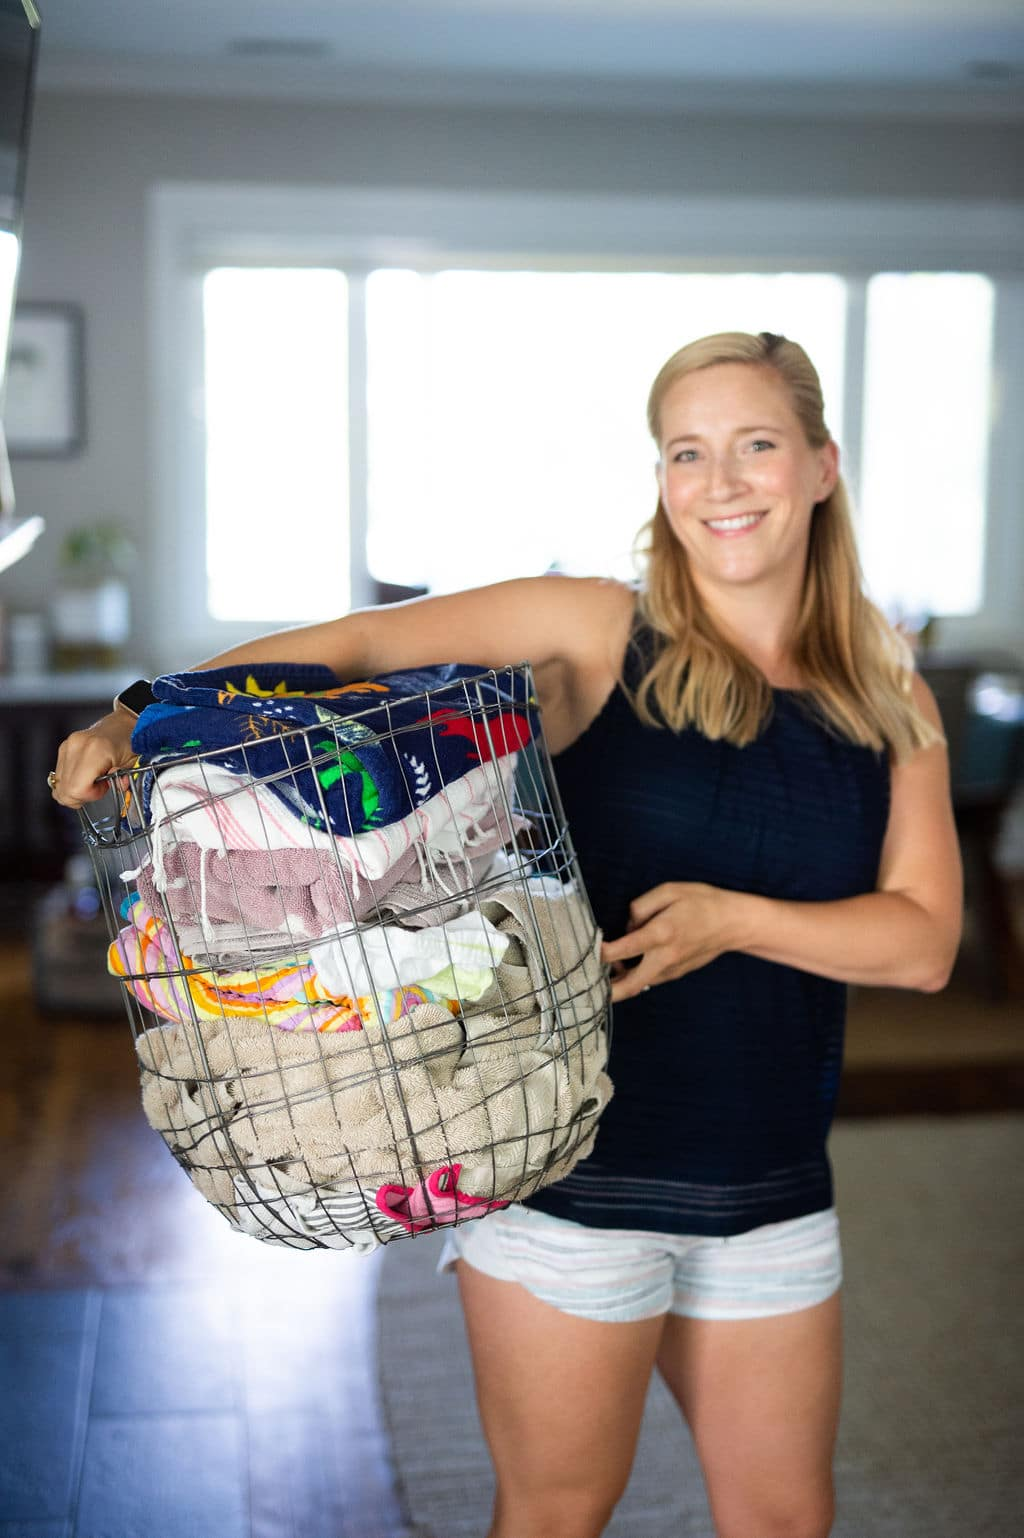 Kath Younger holding wire basket full of laundry.